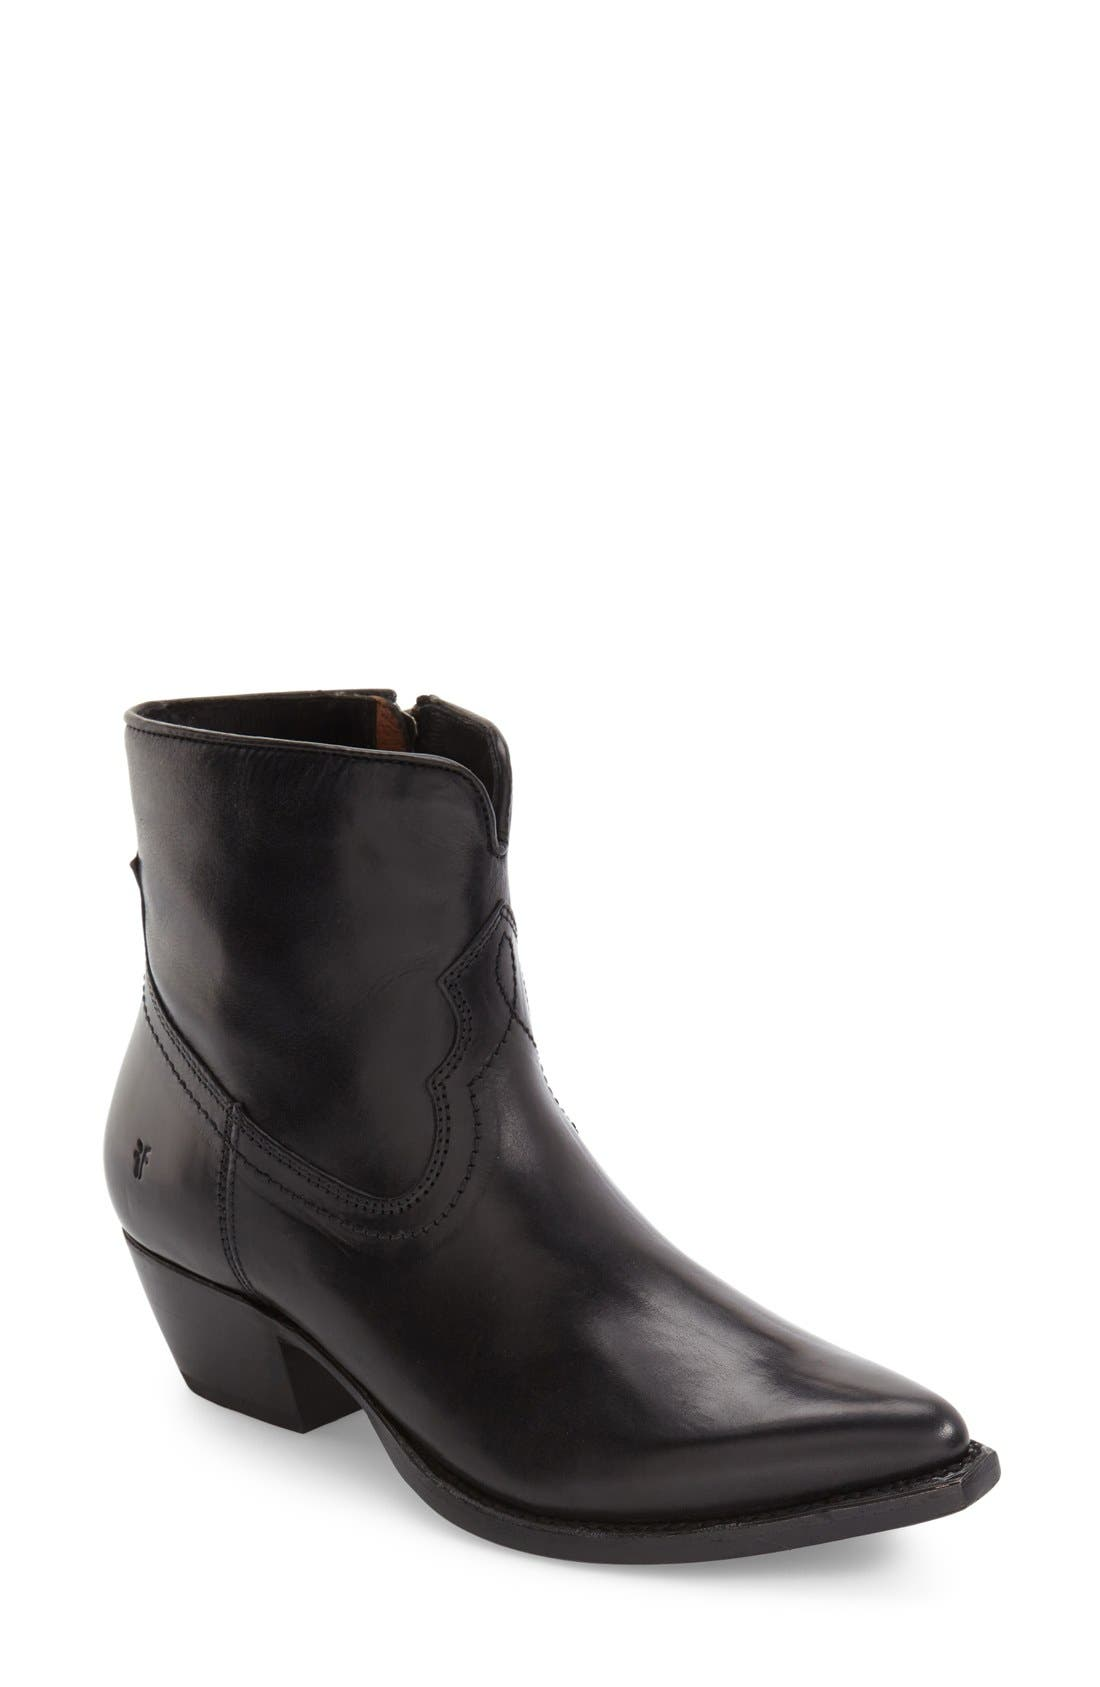 'Shane' Western Bootie,                             Main thumbnail 1, color,                             Black Leather